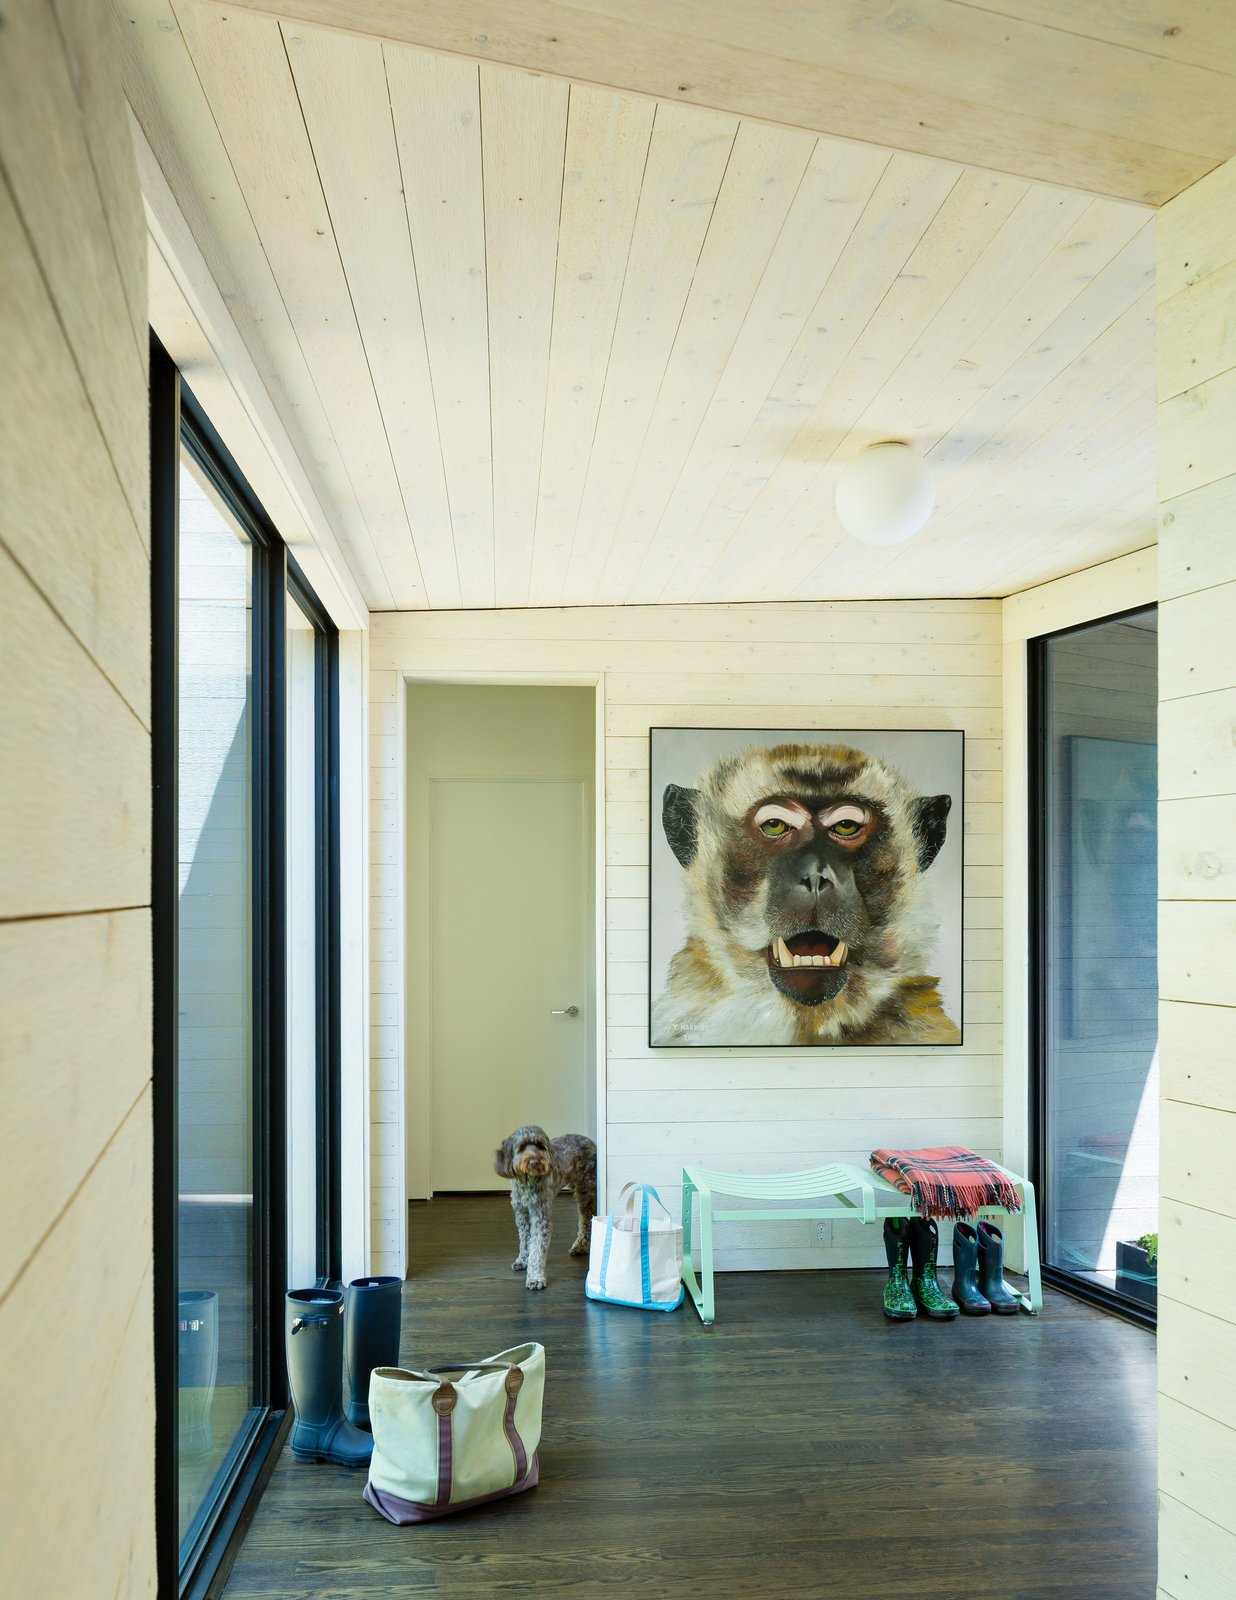 ARCHITECTUREFIRM used rough-sawn cedar paneling throughout, cladding the exterior with blackened pieces, and whitewashing the interior surfaces to form a dramatic visual contrast between inside and out. A painting by artist Tim Harriss hangs above a Crane bench by Double Butter near the entry hall Tagged: Hallway and Medium Hardwood Floor. Three Joined Cabins Turn This Virginia Retreat Into a Modern Take on Camp - Photo 5 of 9